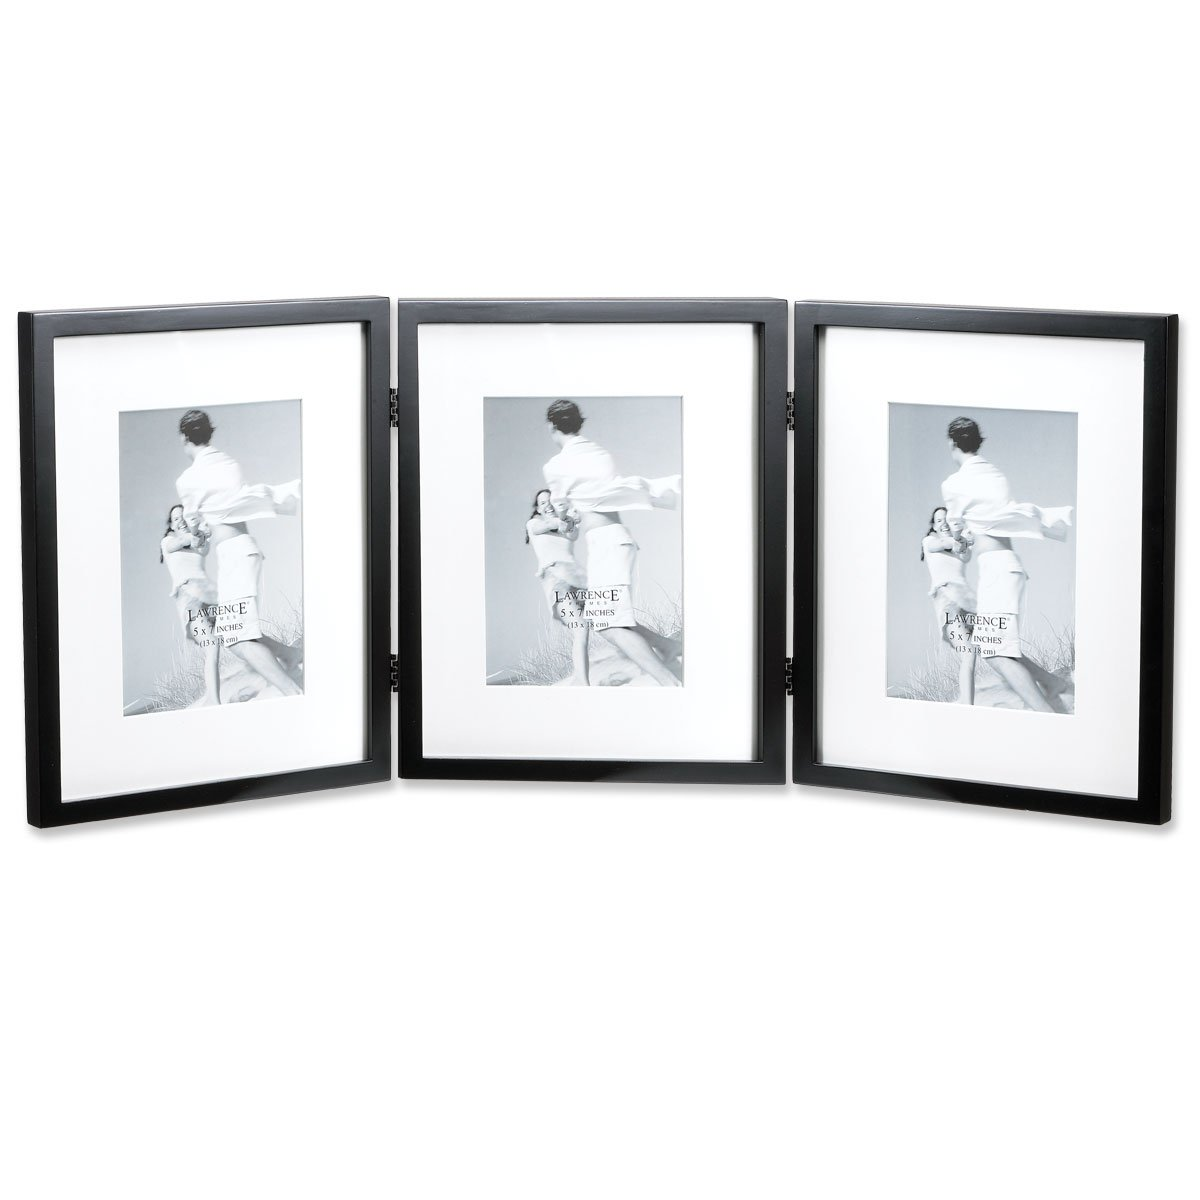 Amazon lawrence frames black wood 8 by 10 inch hinged triple amazon lawrence frames black wood 8 by 10 inch hinged triple picture frame comes with bevel cut mats for 5 by 7 inch photos jeuxipadfo Gallery